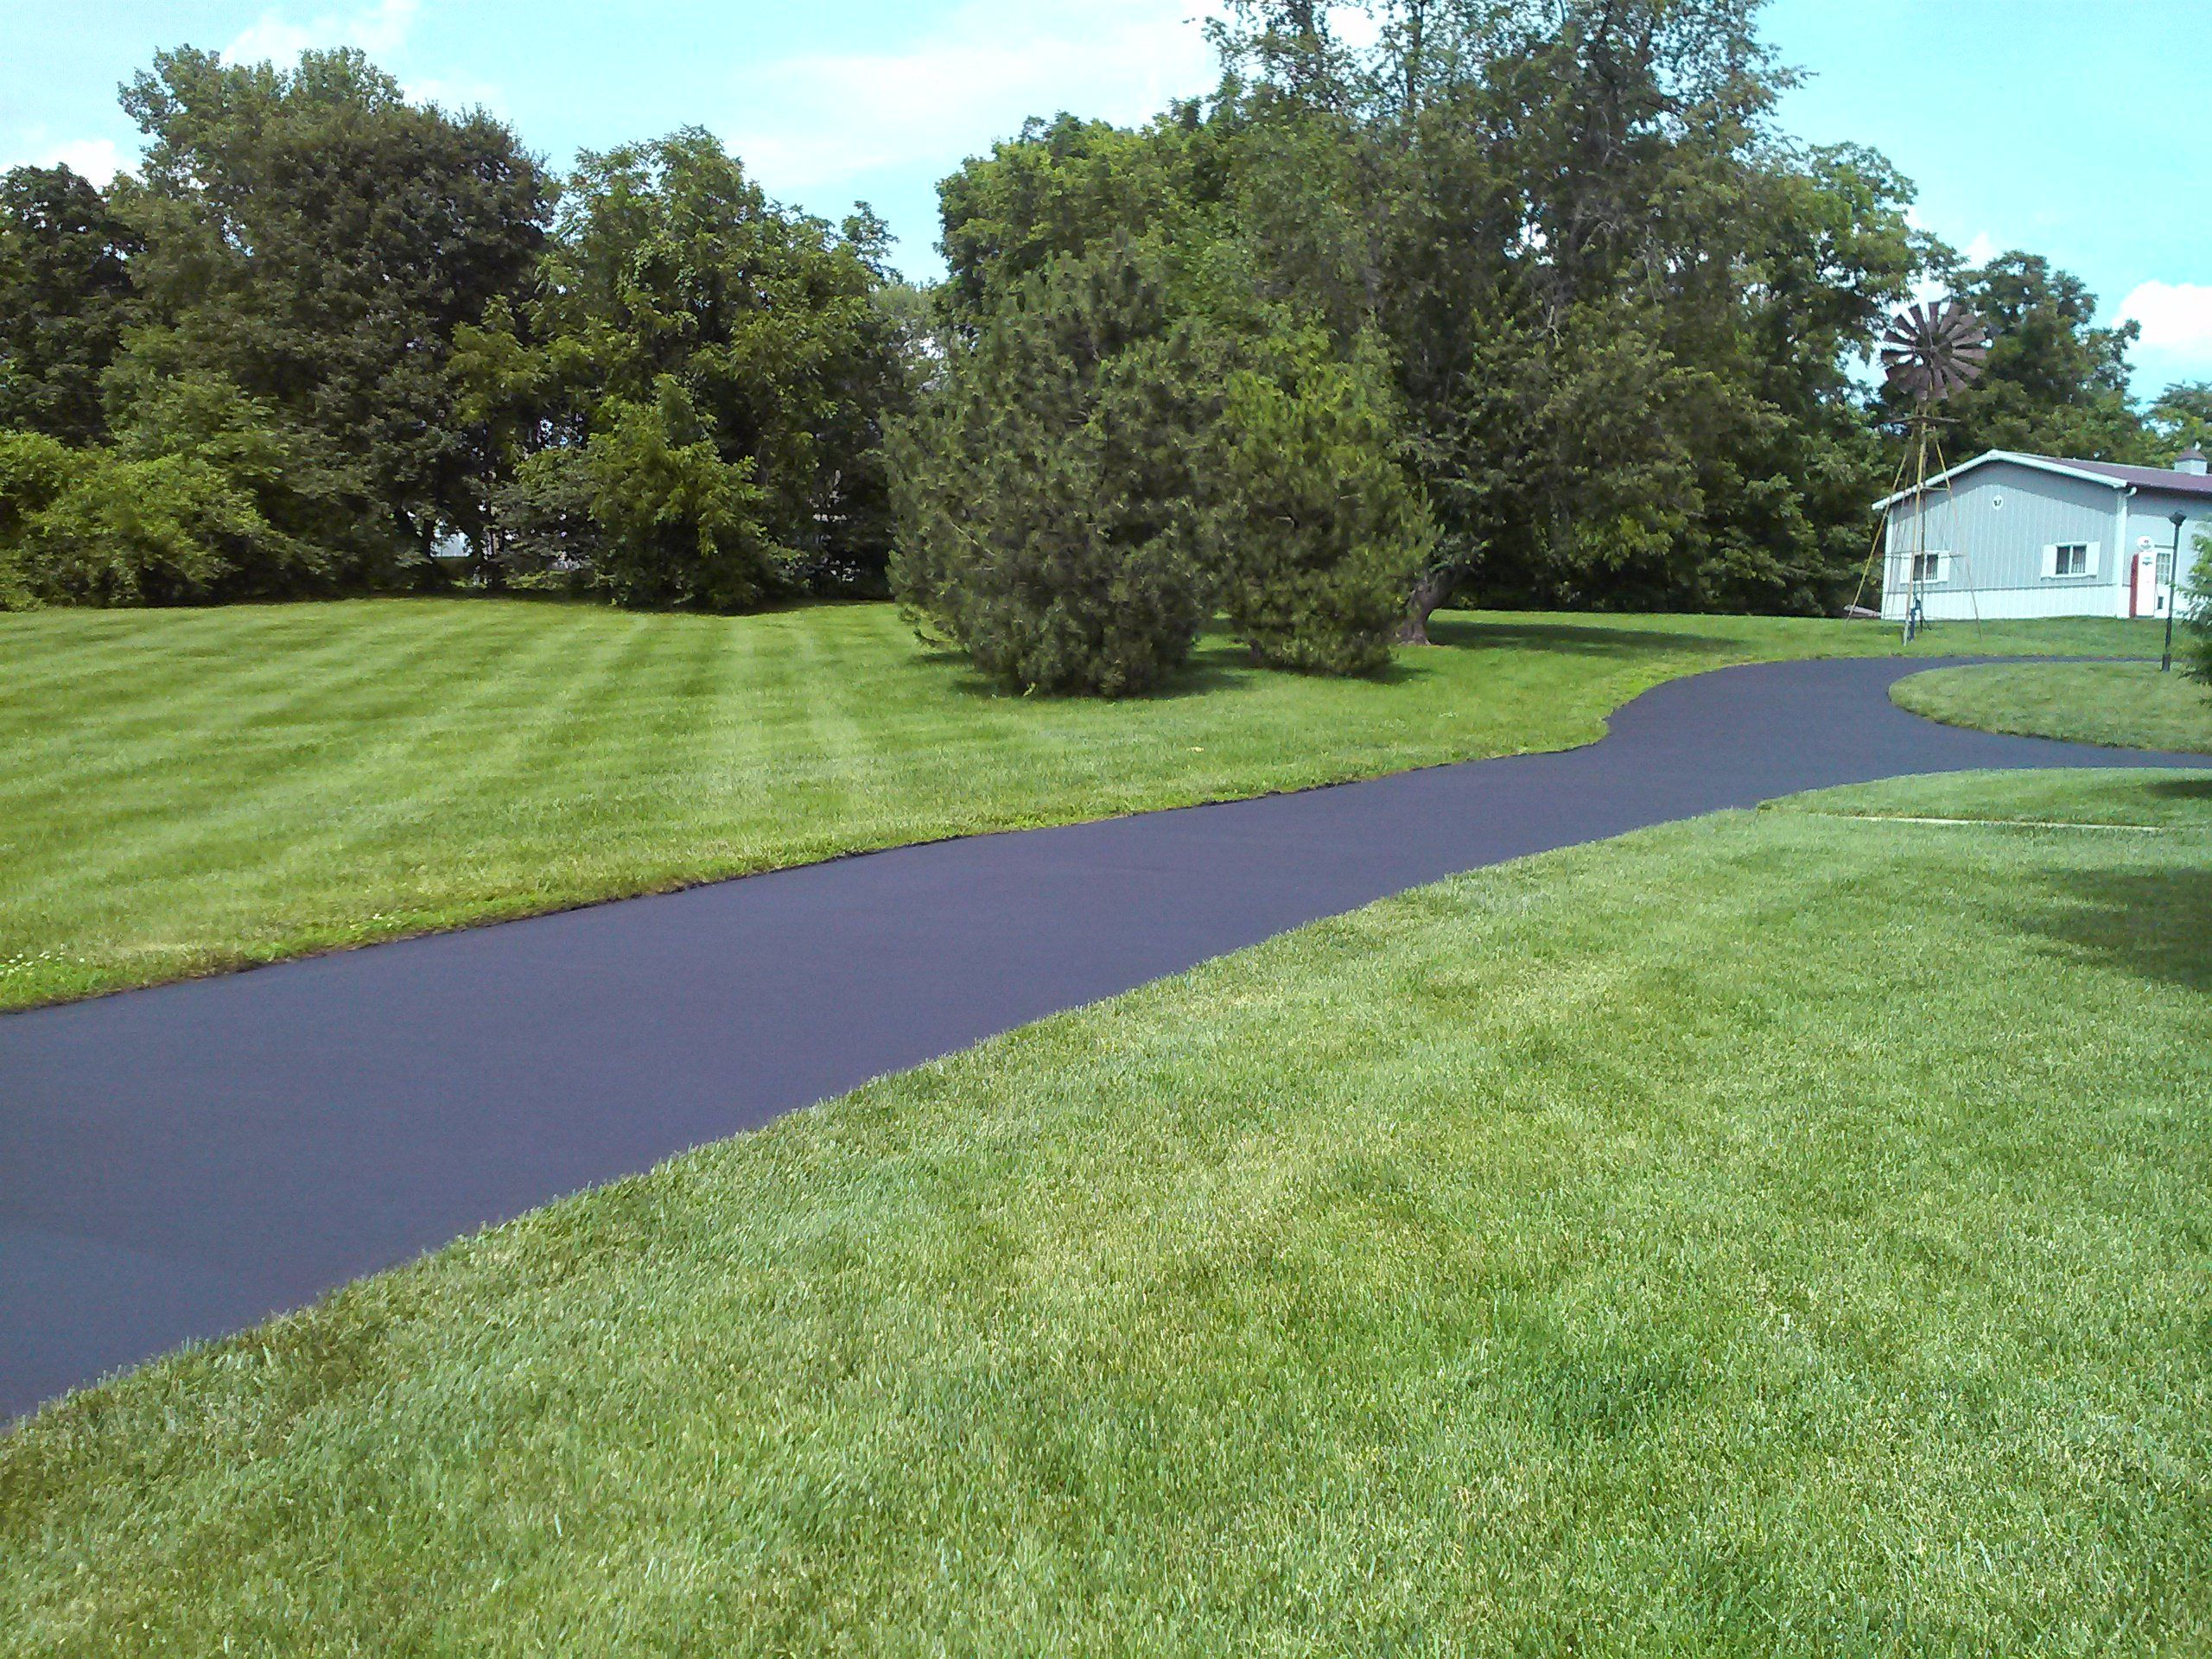 2019 Asphalt Paving Costs Install Resurface Replace Prices Homeadvisor Average Cost Of Landscaping Backyard Outdoor Jobs